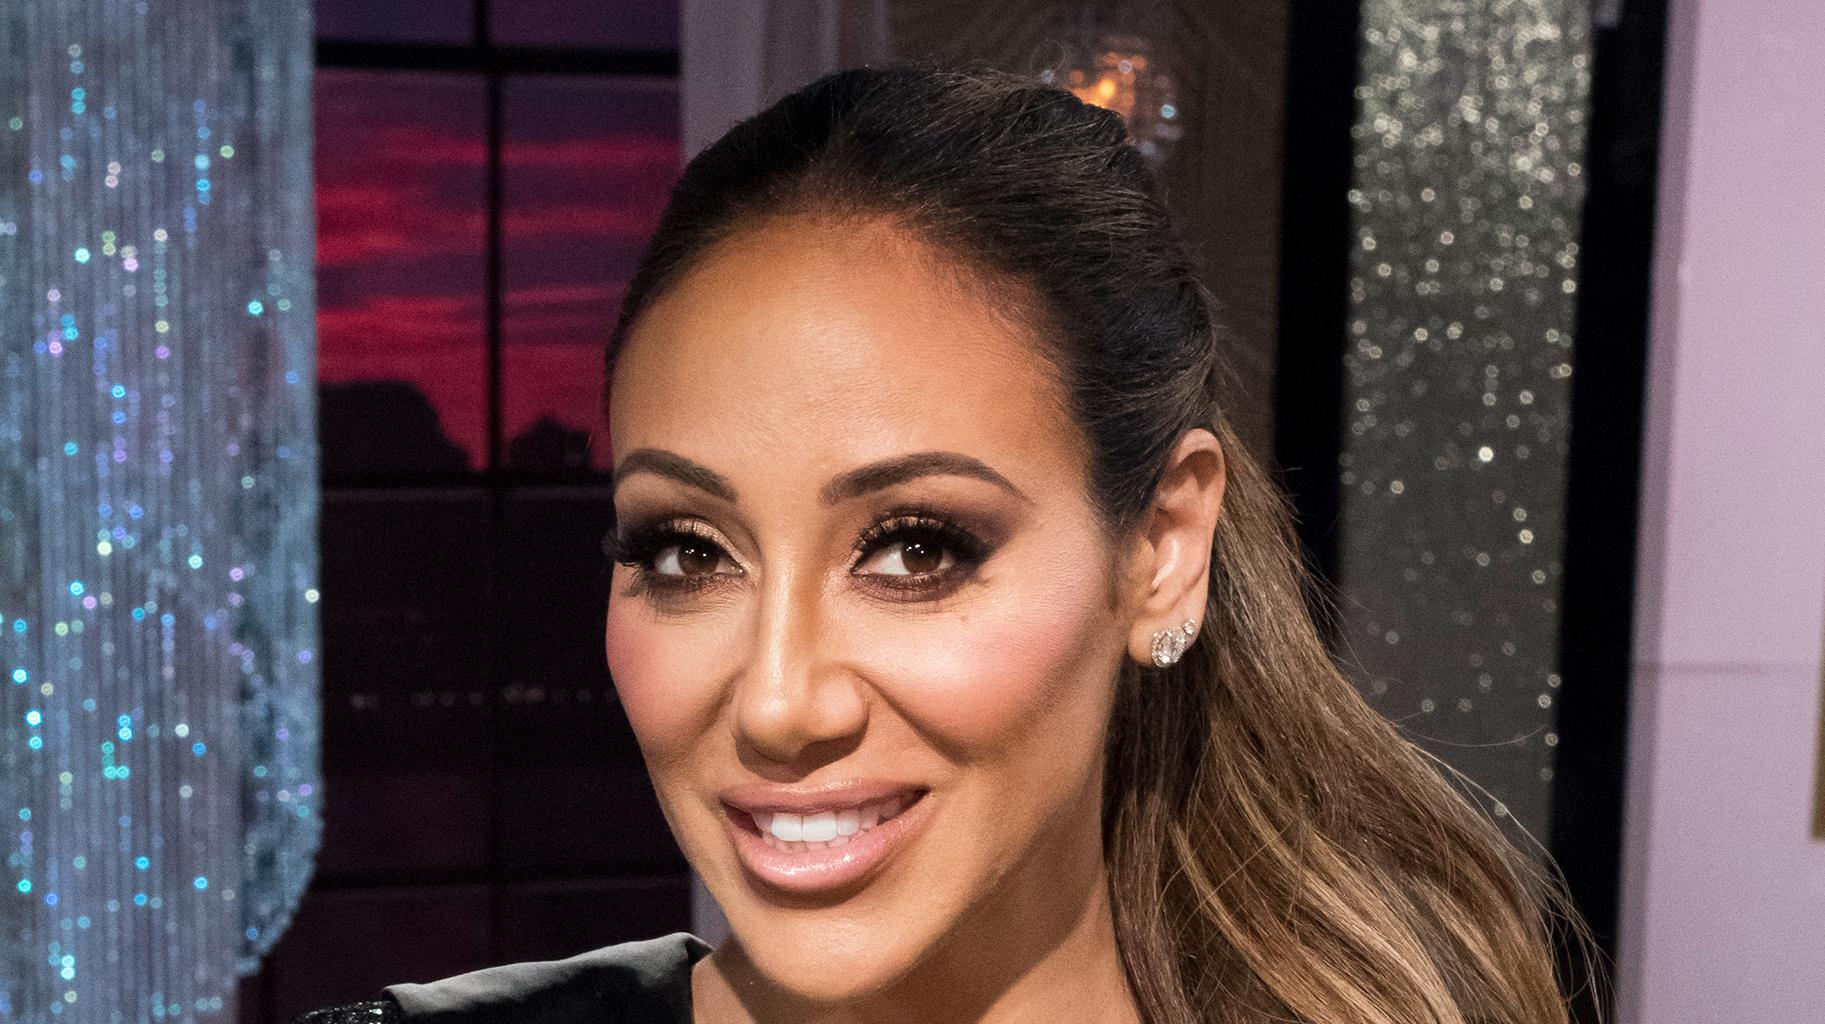 Melissa Gorga Says She's Freezing Her Eggs - Reveals Plans To Add A Fourth Baby To The Family!